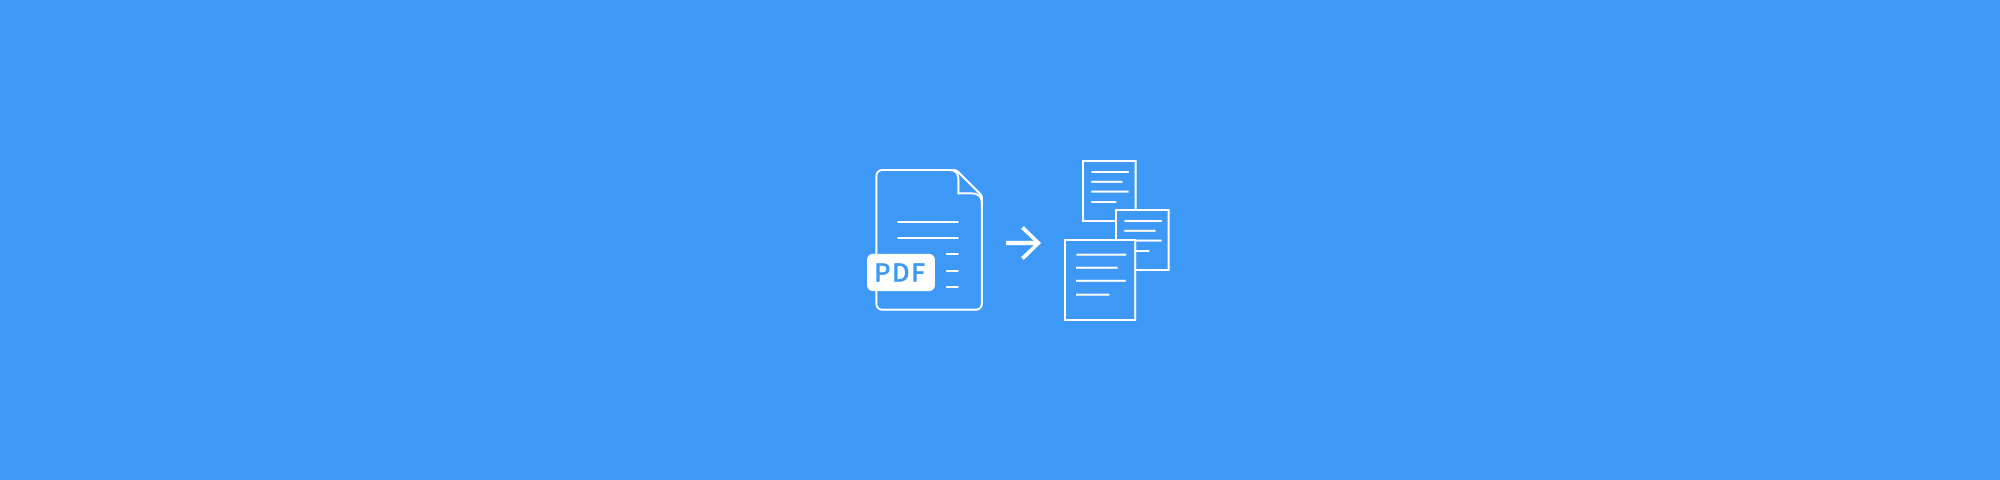 convert pdf file to powerpoint online free